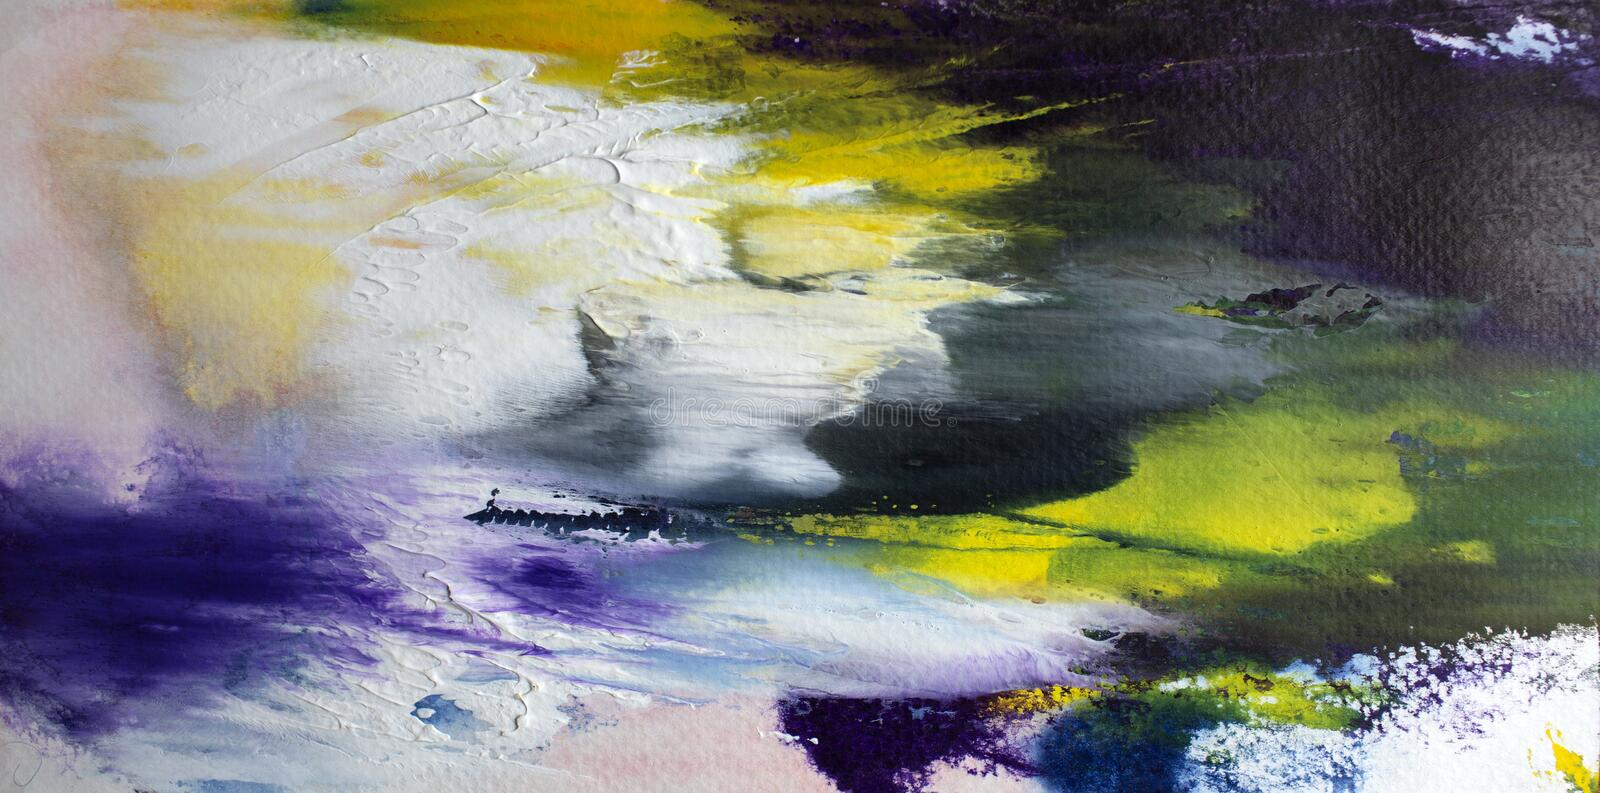 Abstract acrylic modern contemporary art ywhite explosion royalty free stock photography